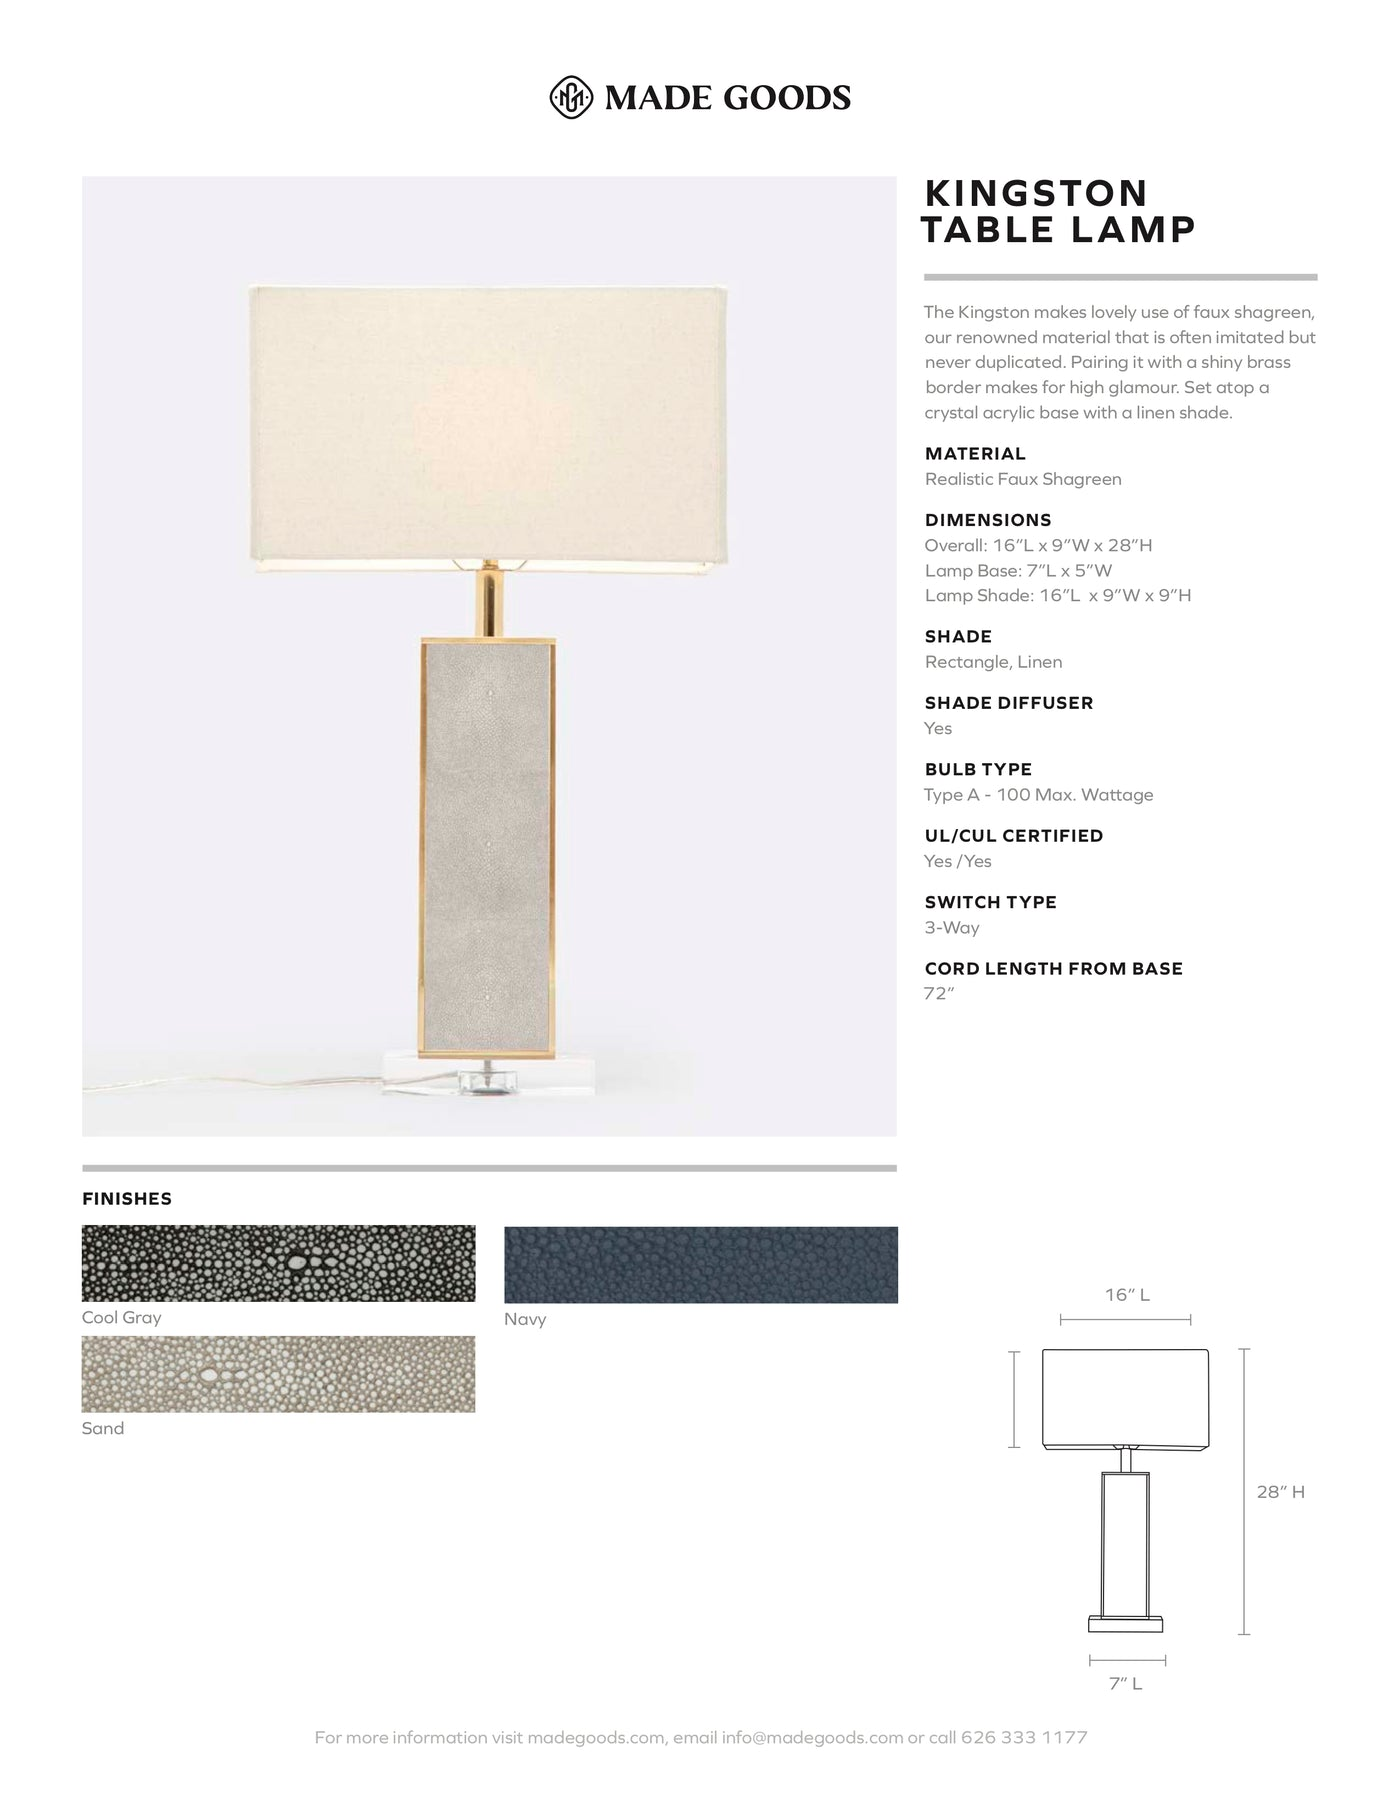 Made Goods Kingston Table Lamp Cool Gray Faux Shagreen